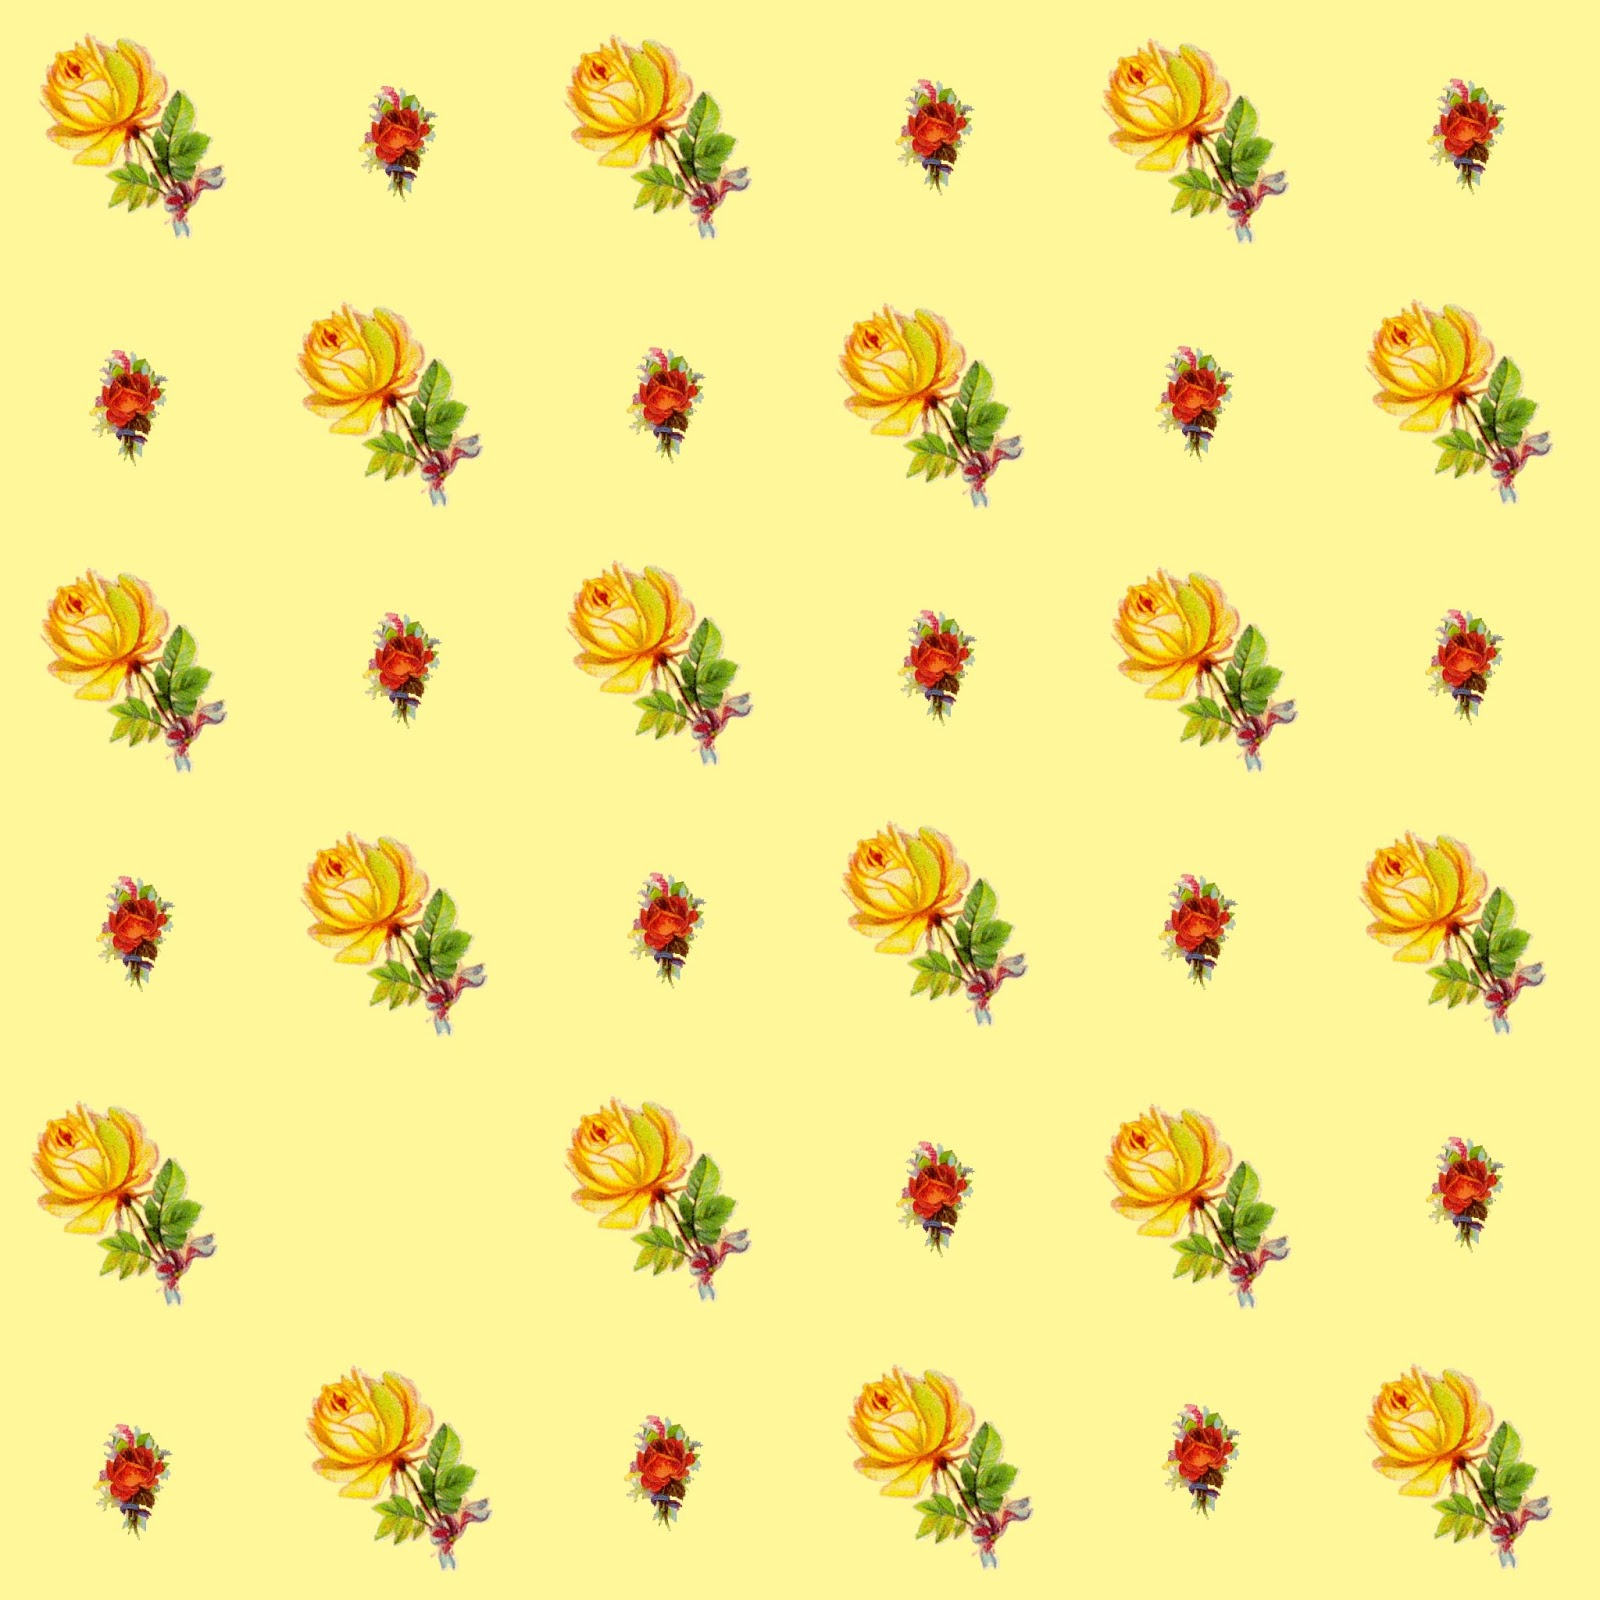 Wallpaper Of Yellow Rose: The Artzee Blog: Yellow And Pink Roses Printable Download